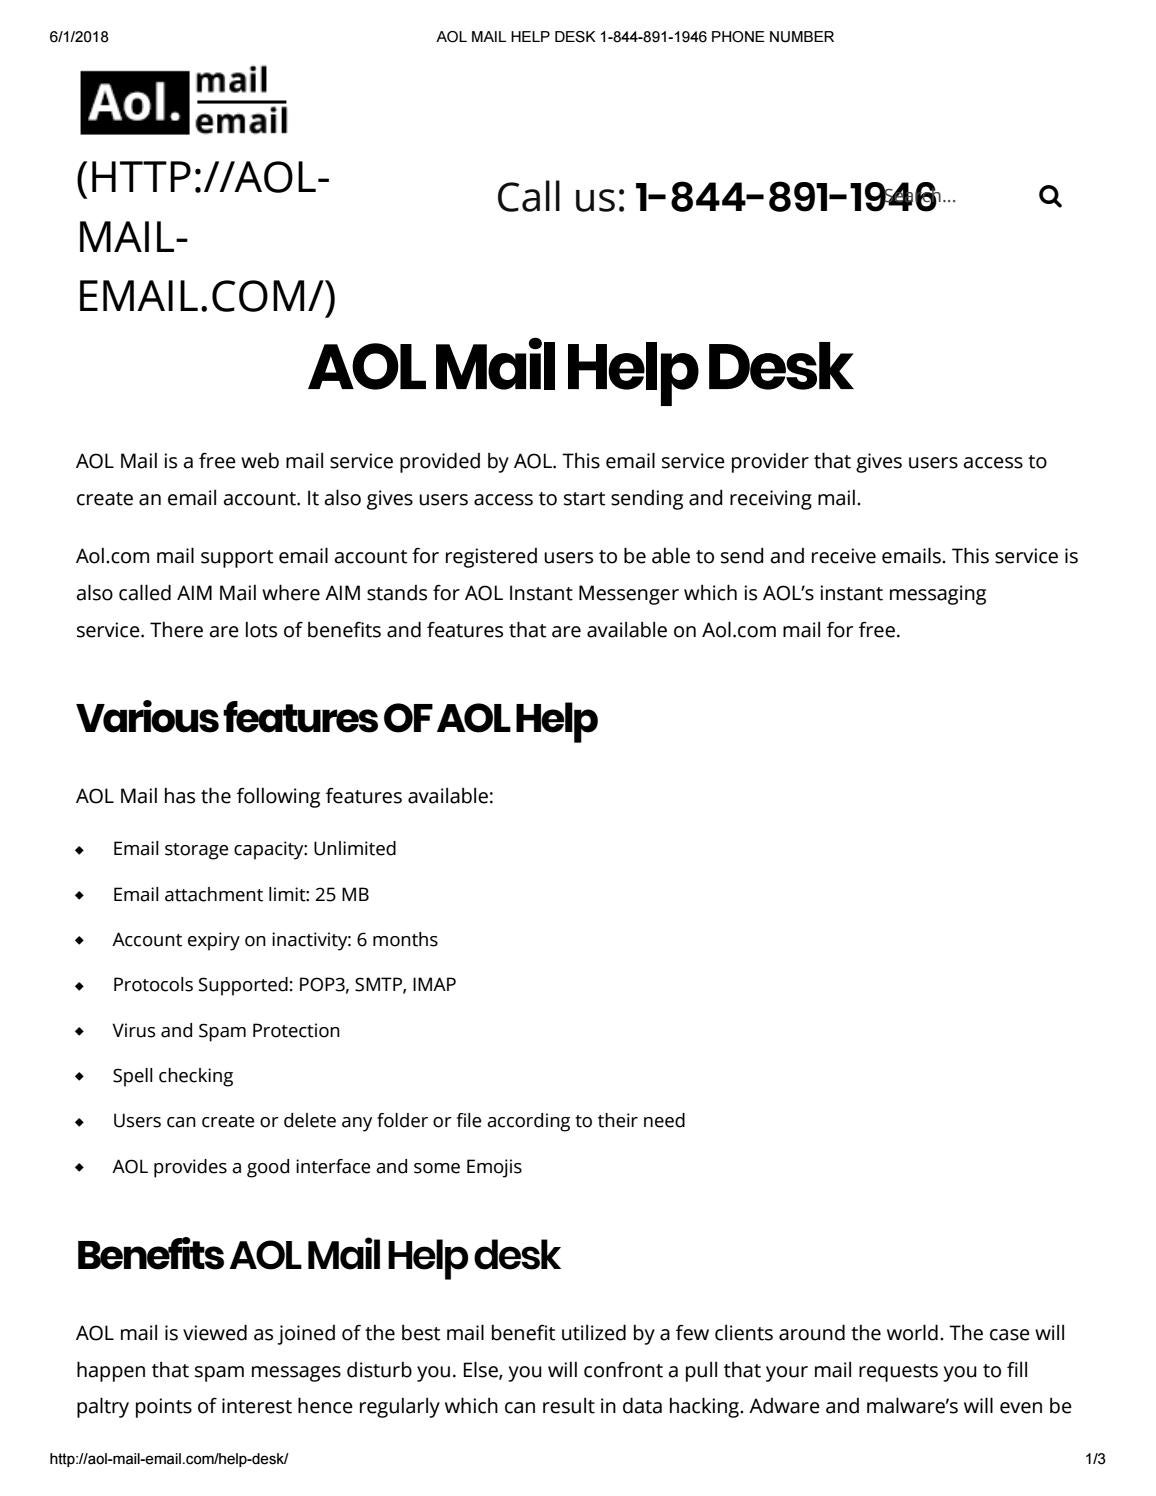 Aol mail help desk 1 844 891 1946 phone number by Himanshu